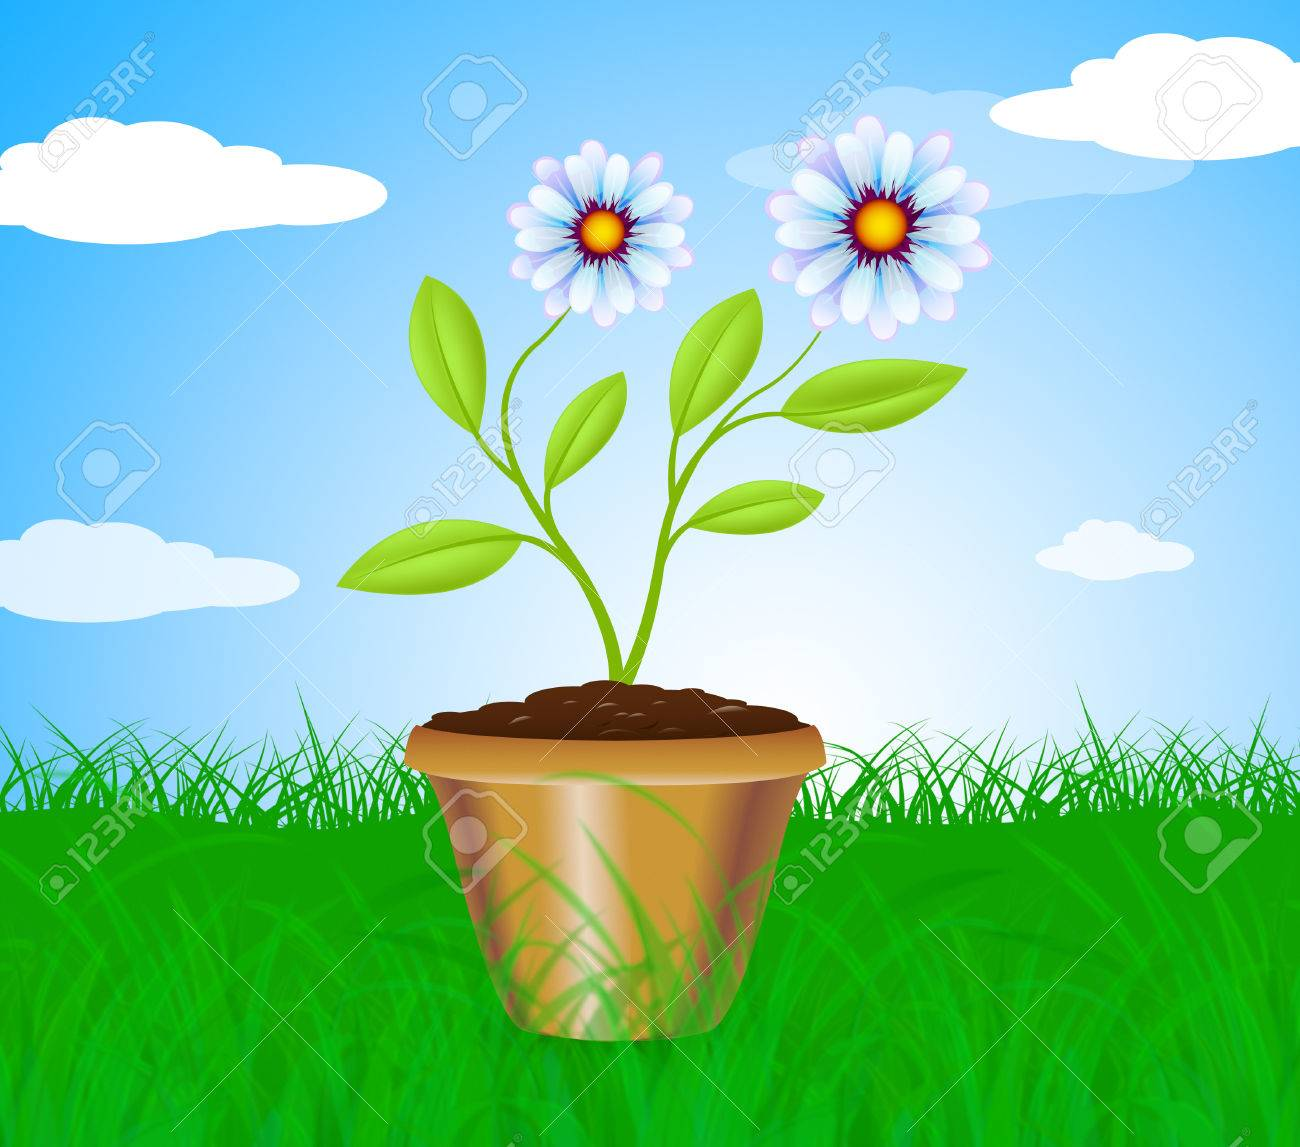 Potted Plant Meaning Cultivation Gardening And Plants Stock Photo